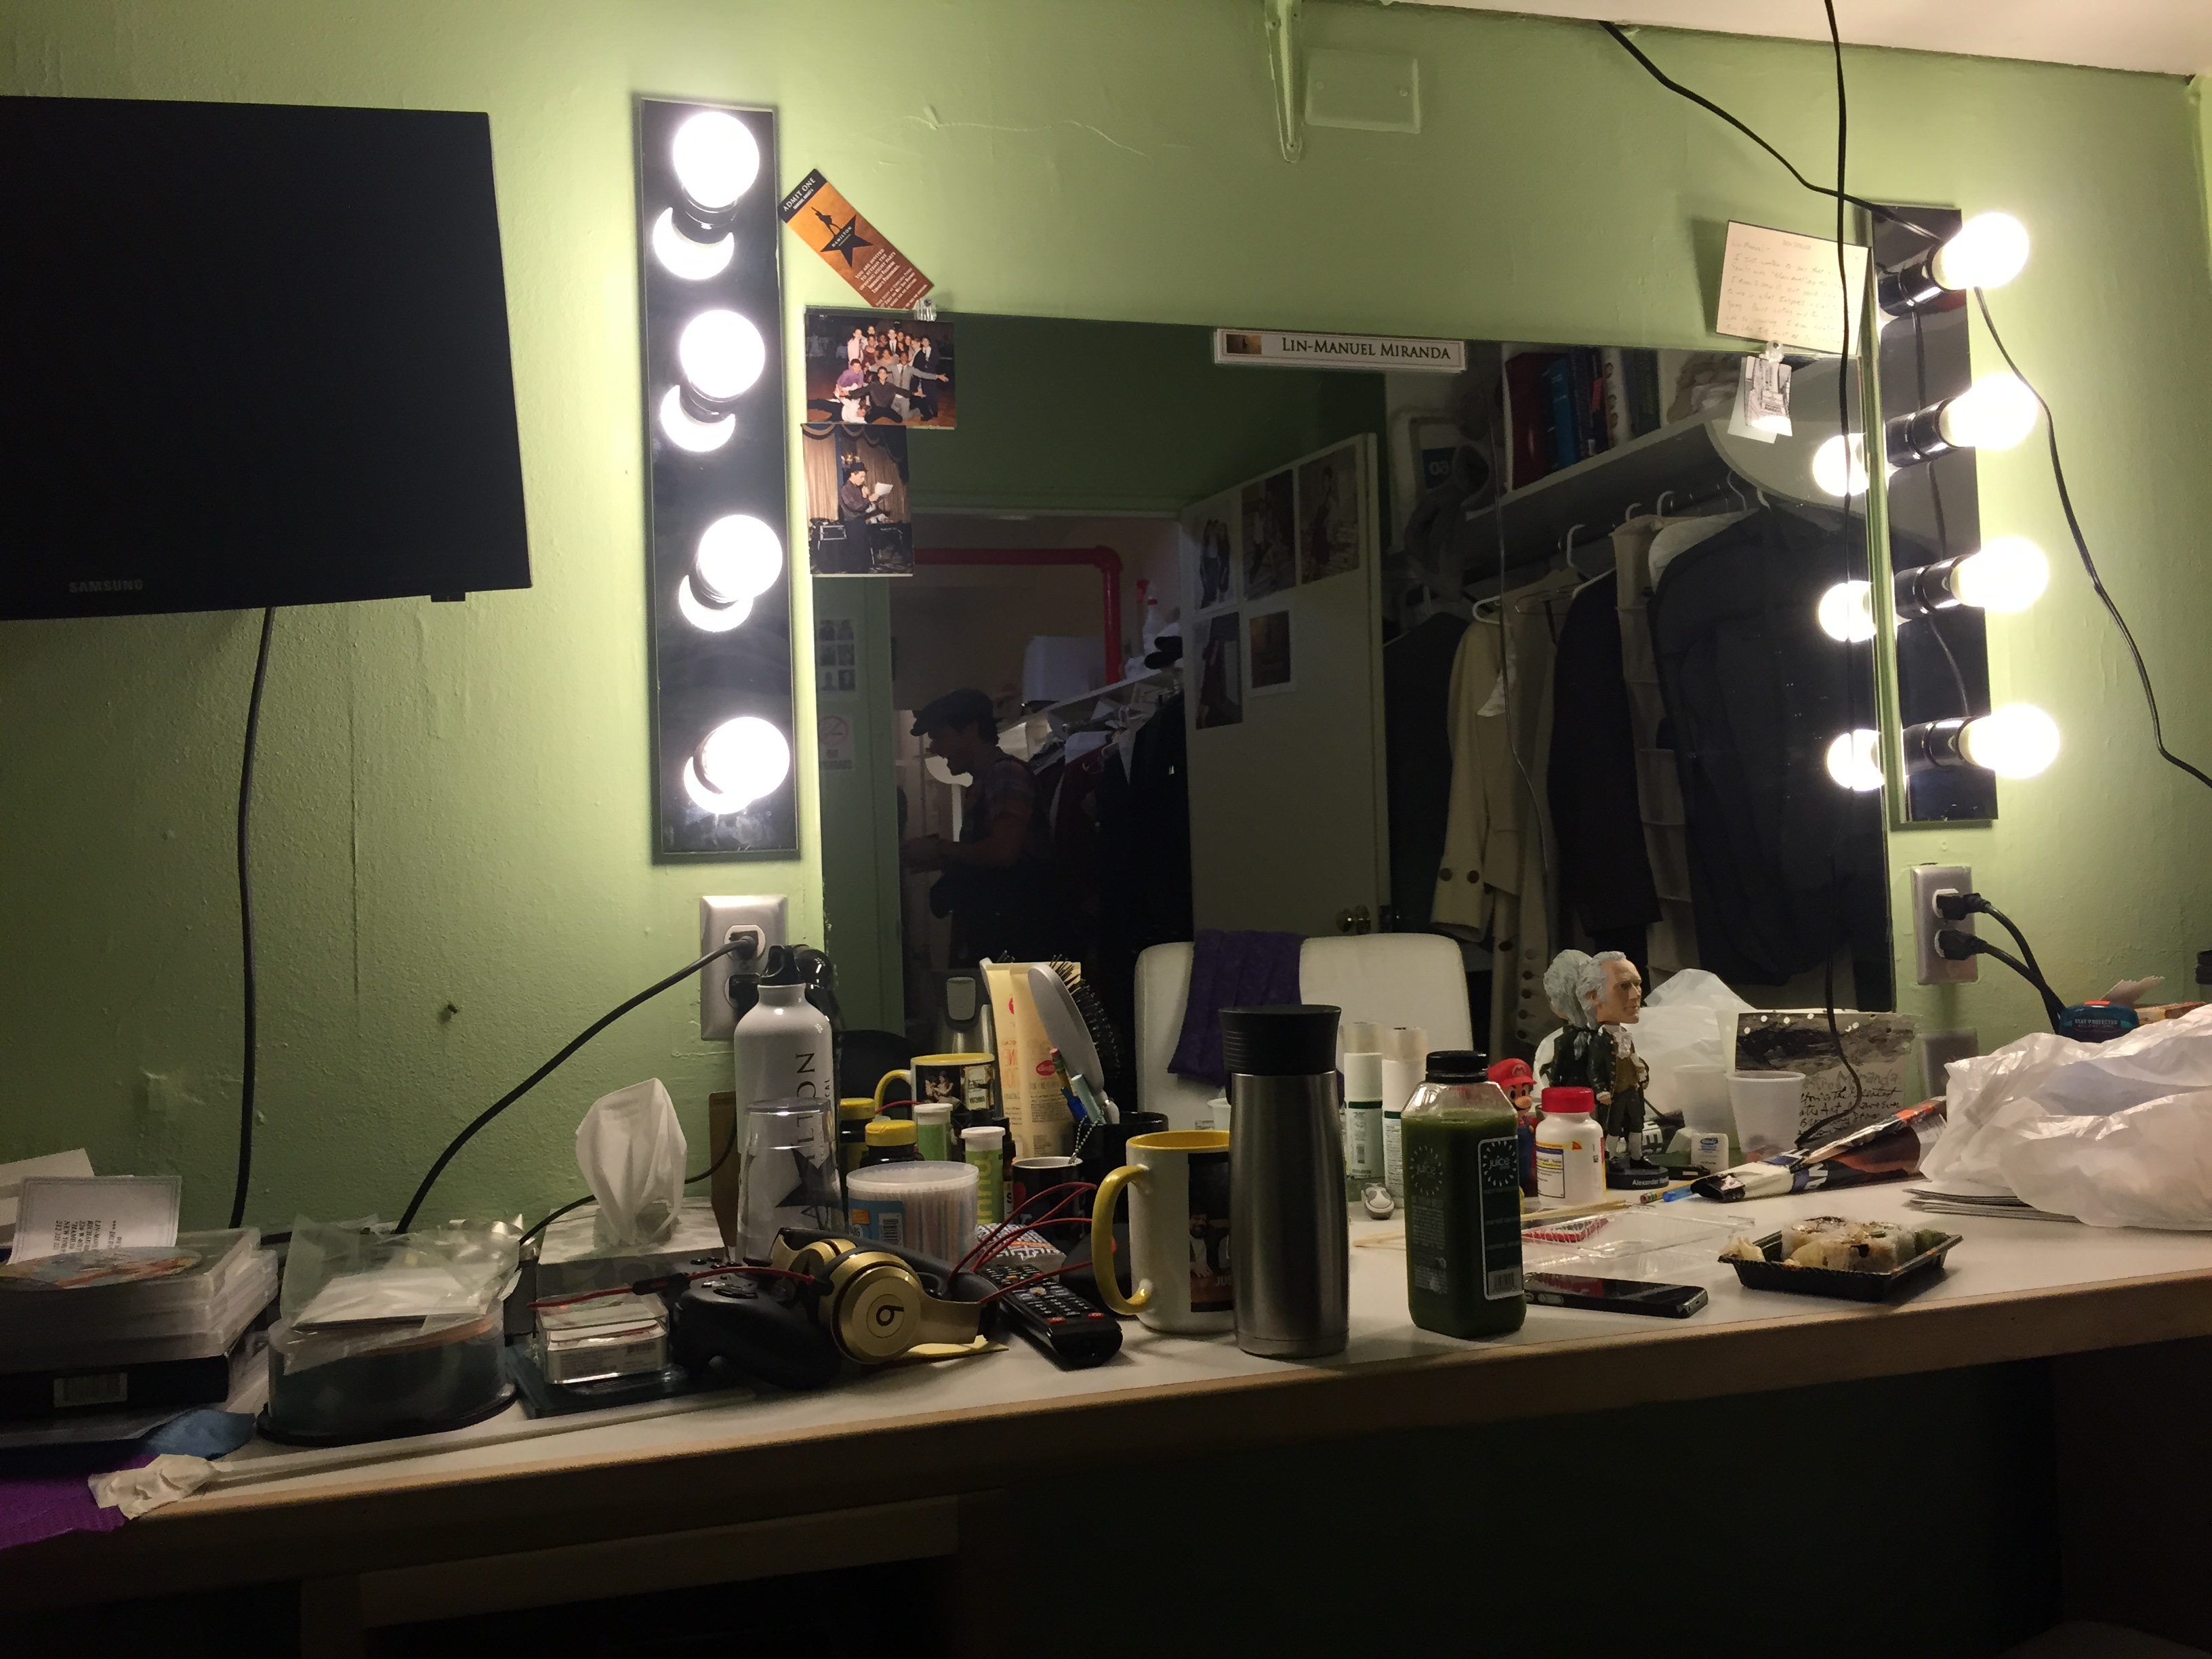 Backstage at the Richard Rogers Theater.